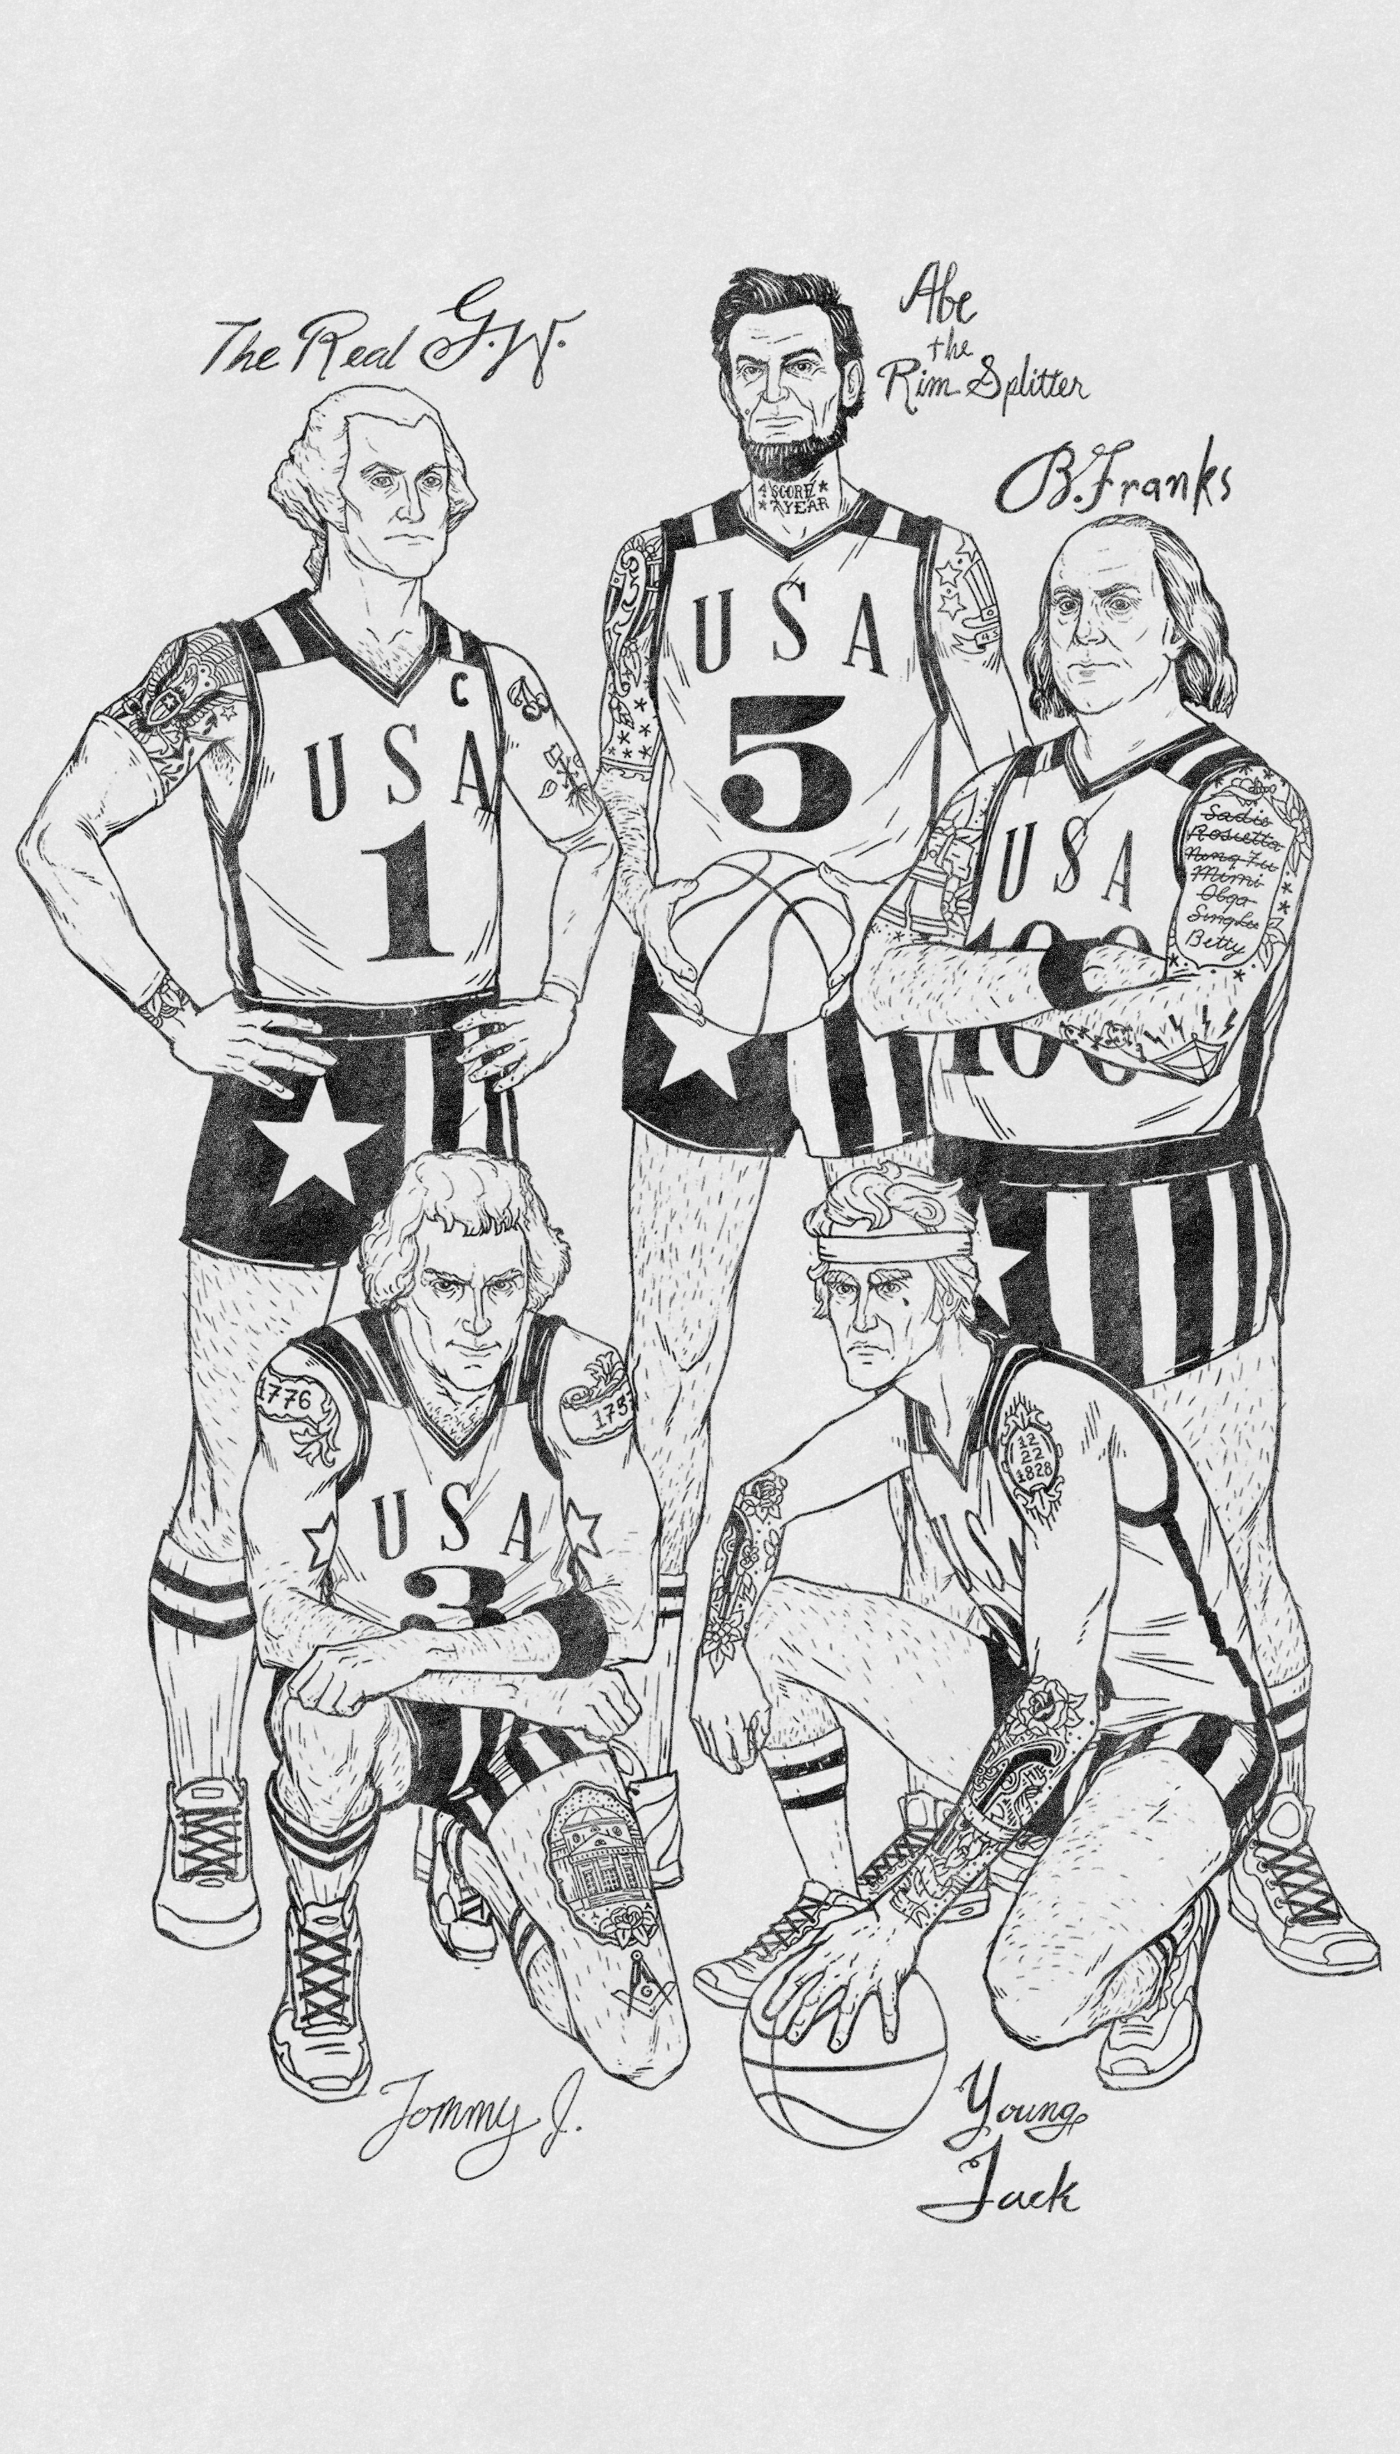 The Original Dream Team Illustration